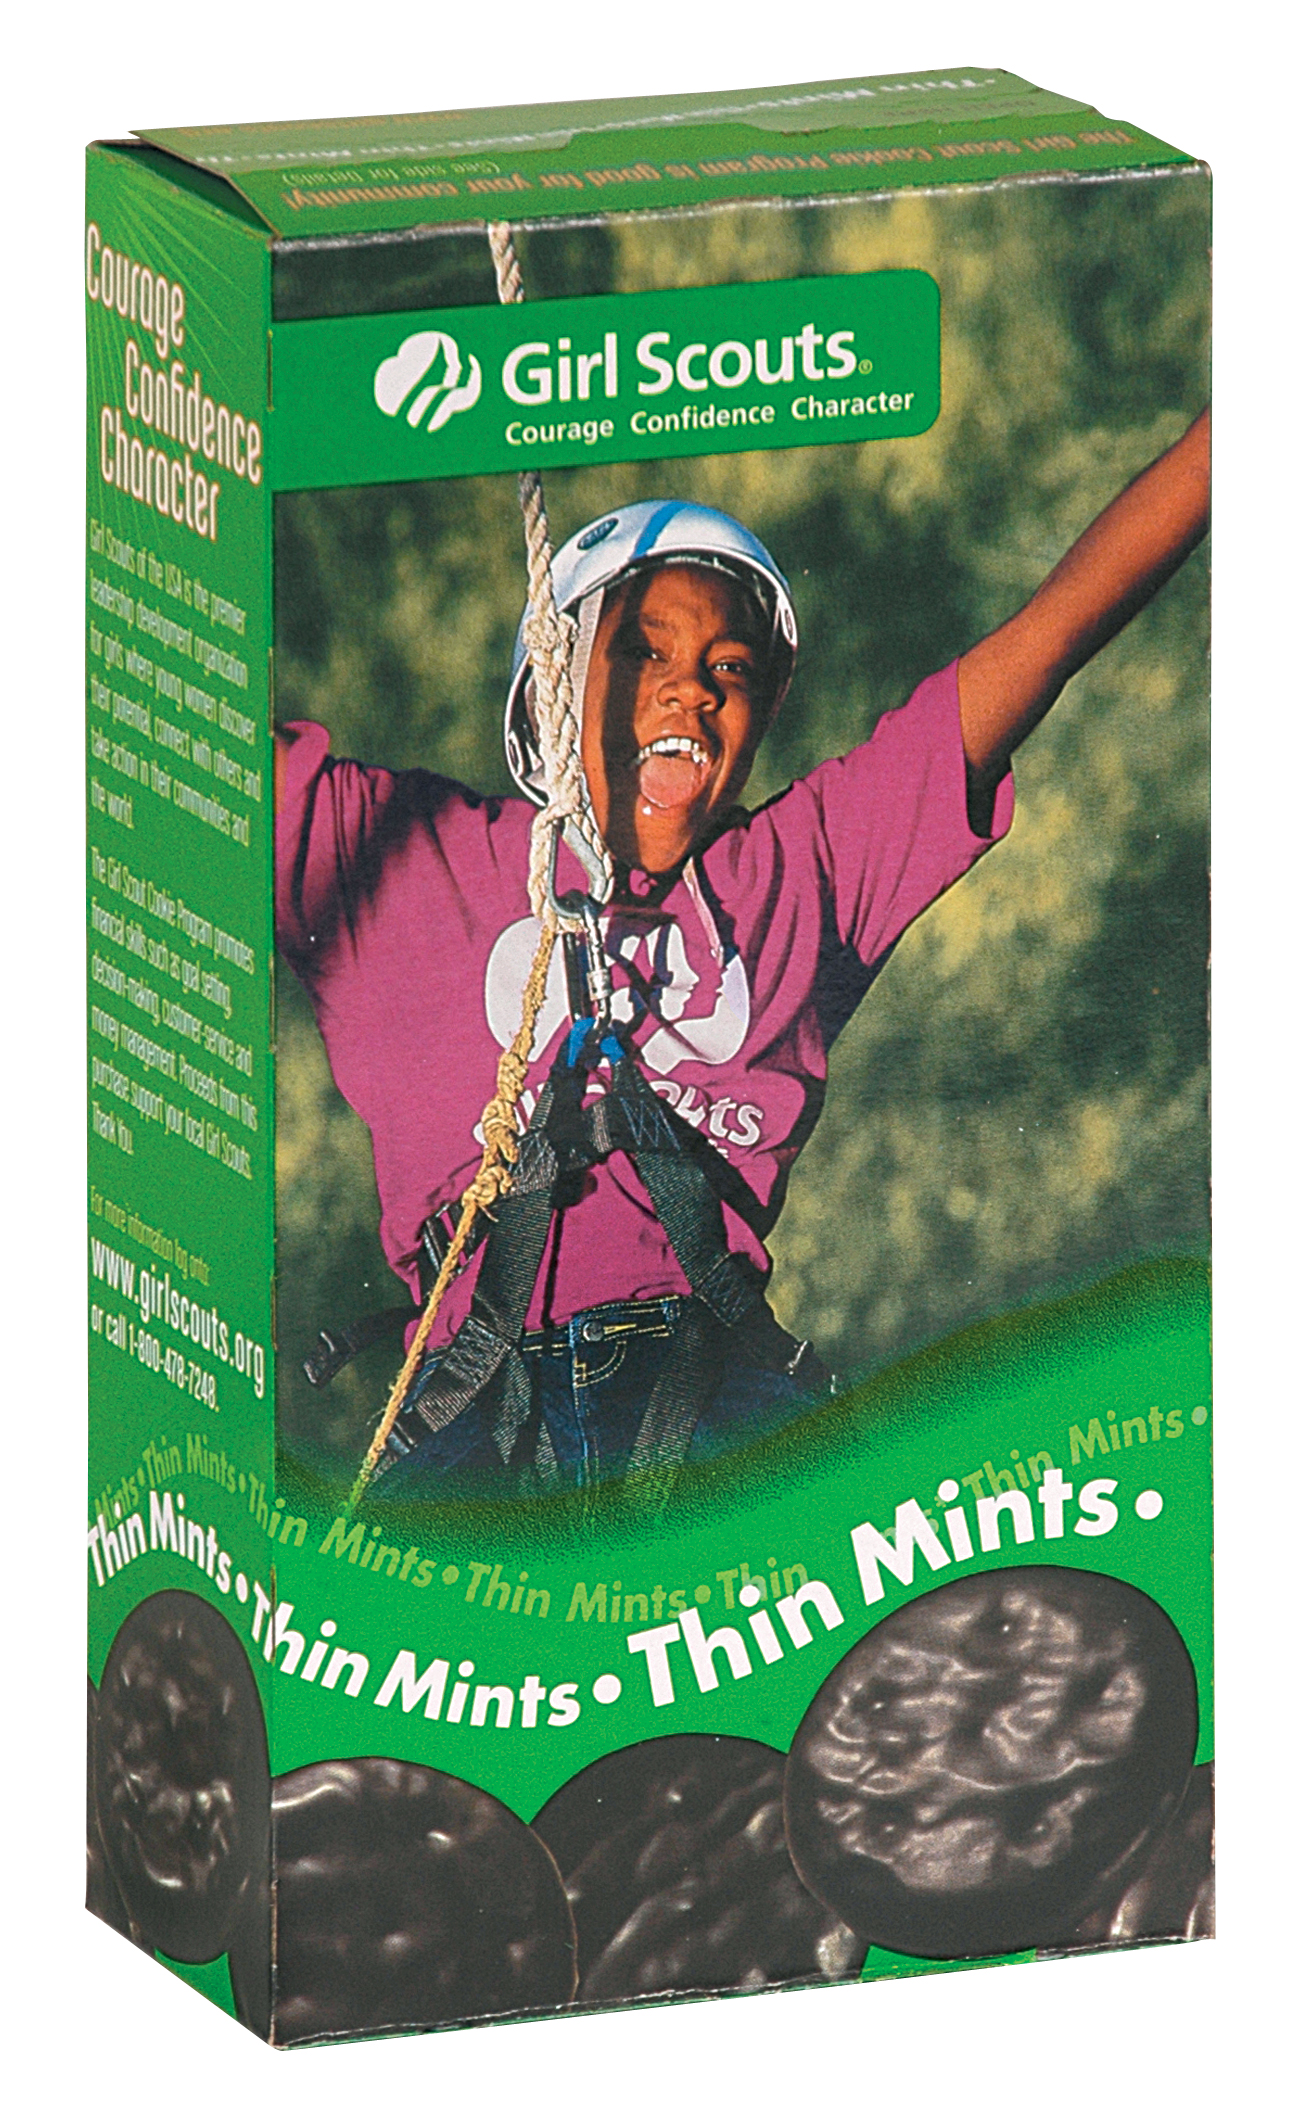 Thin Mints is a traditional favorite of Girl Scout cookie lovers.